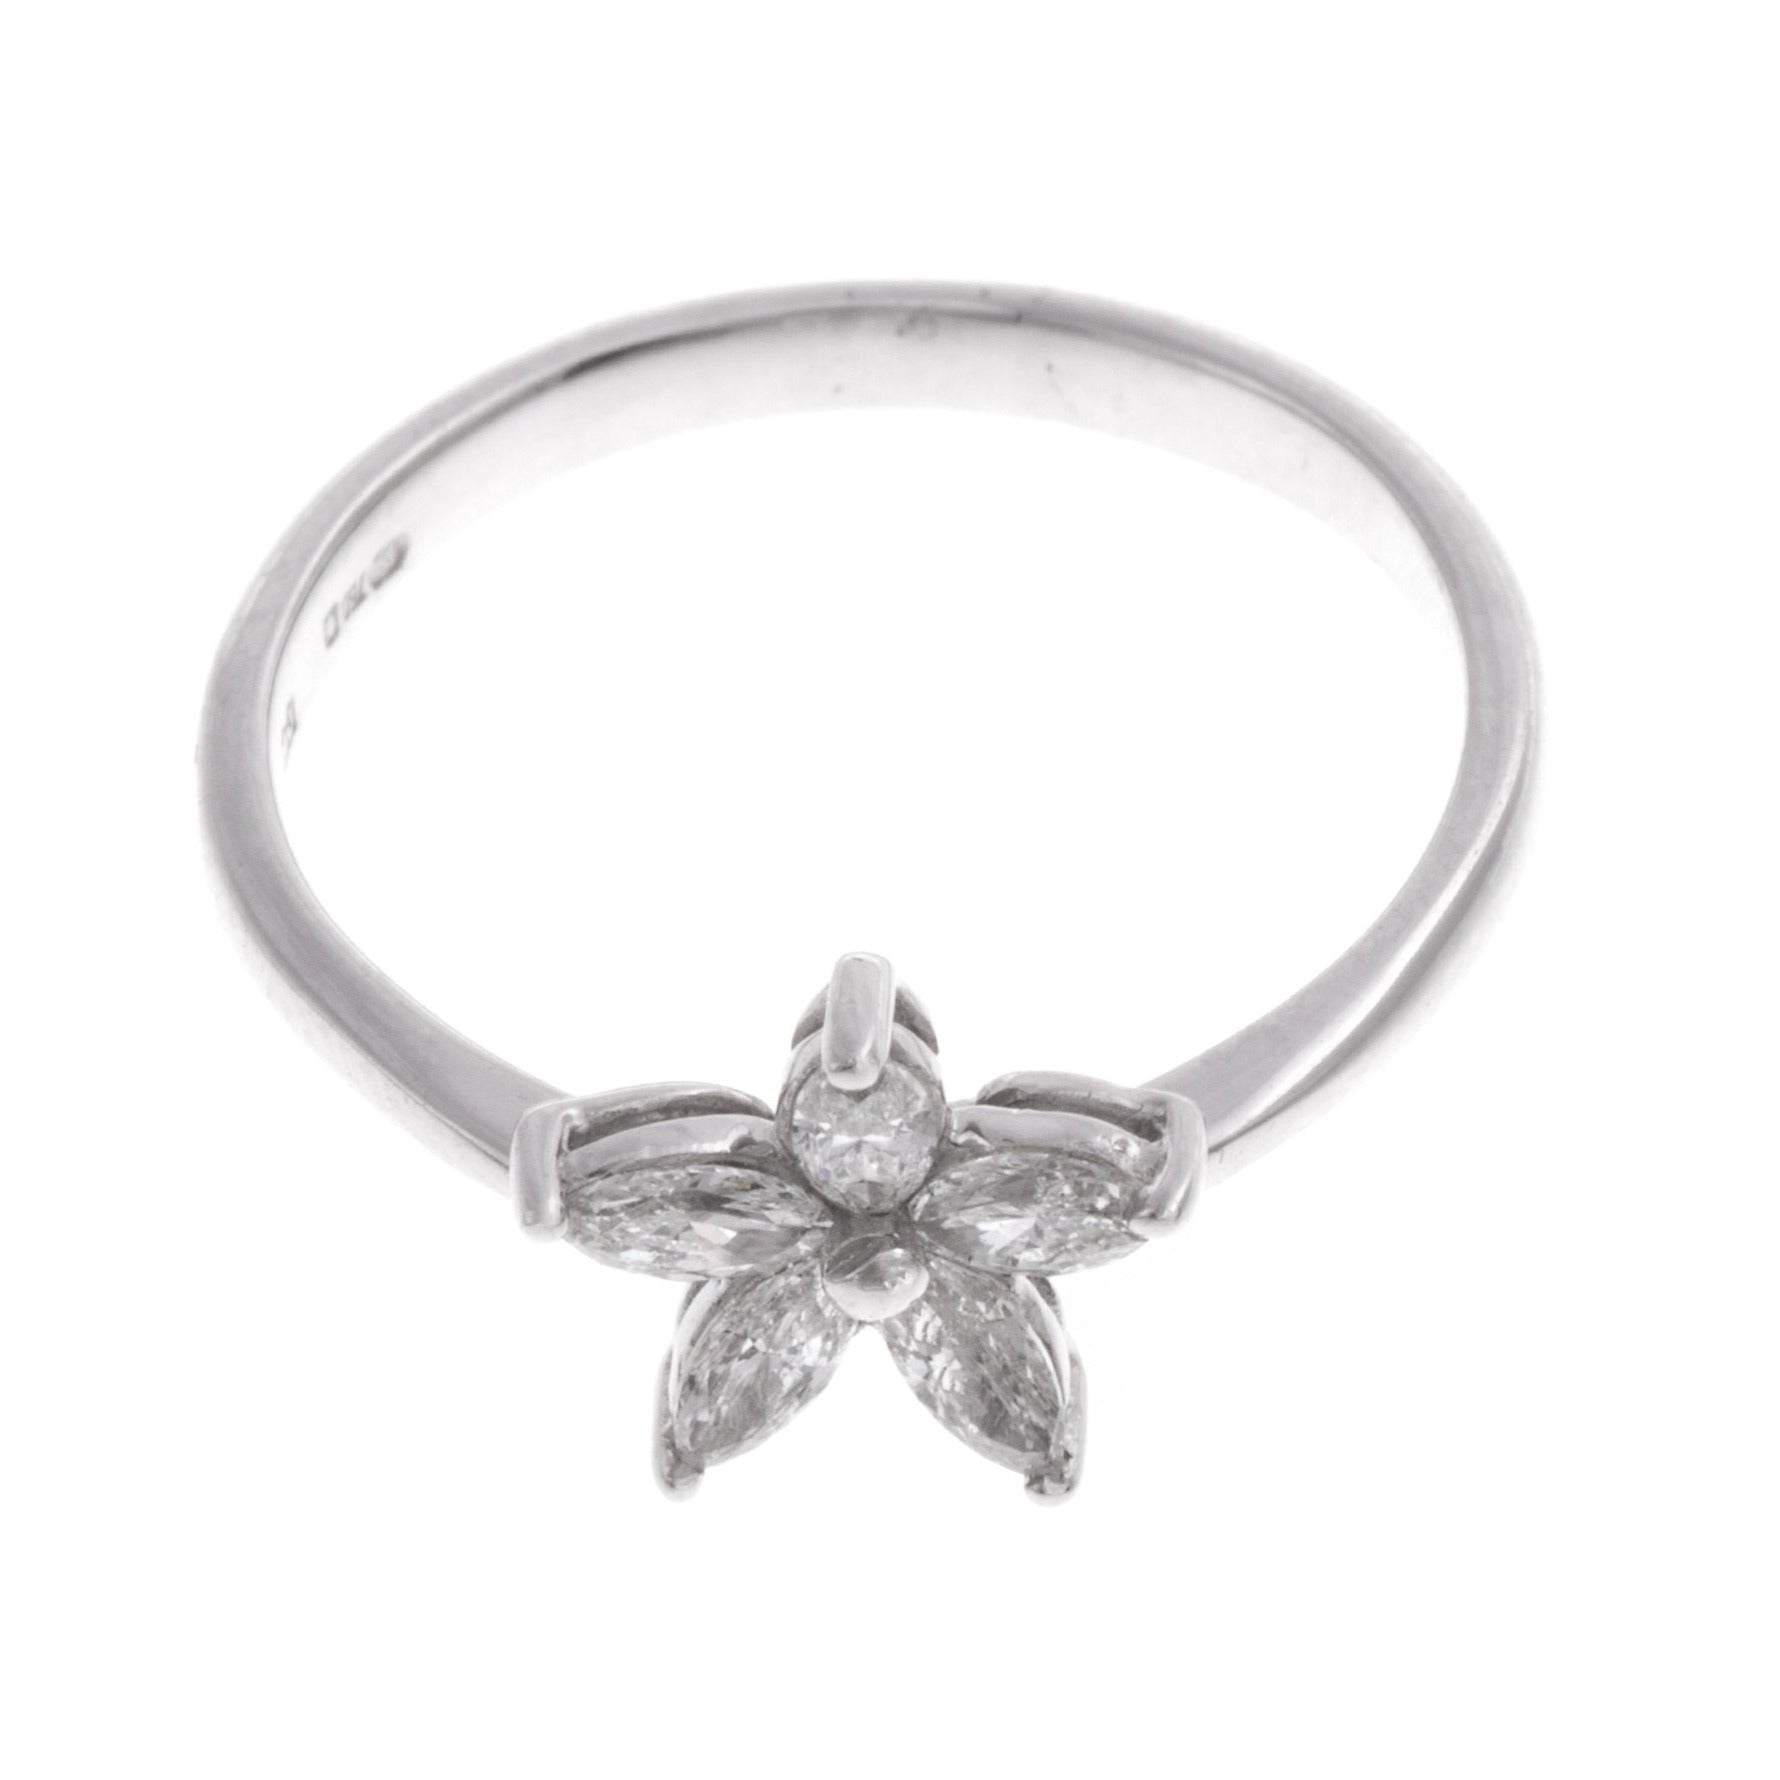 18ct White Gold Diamond 'Flower Design' Dress Ring ZS04727